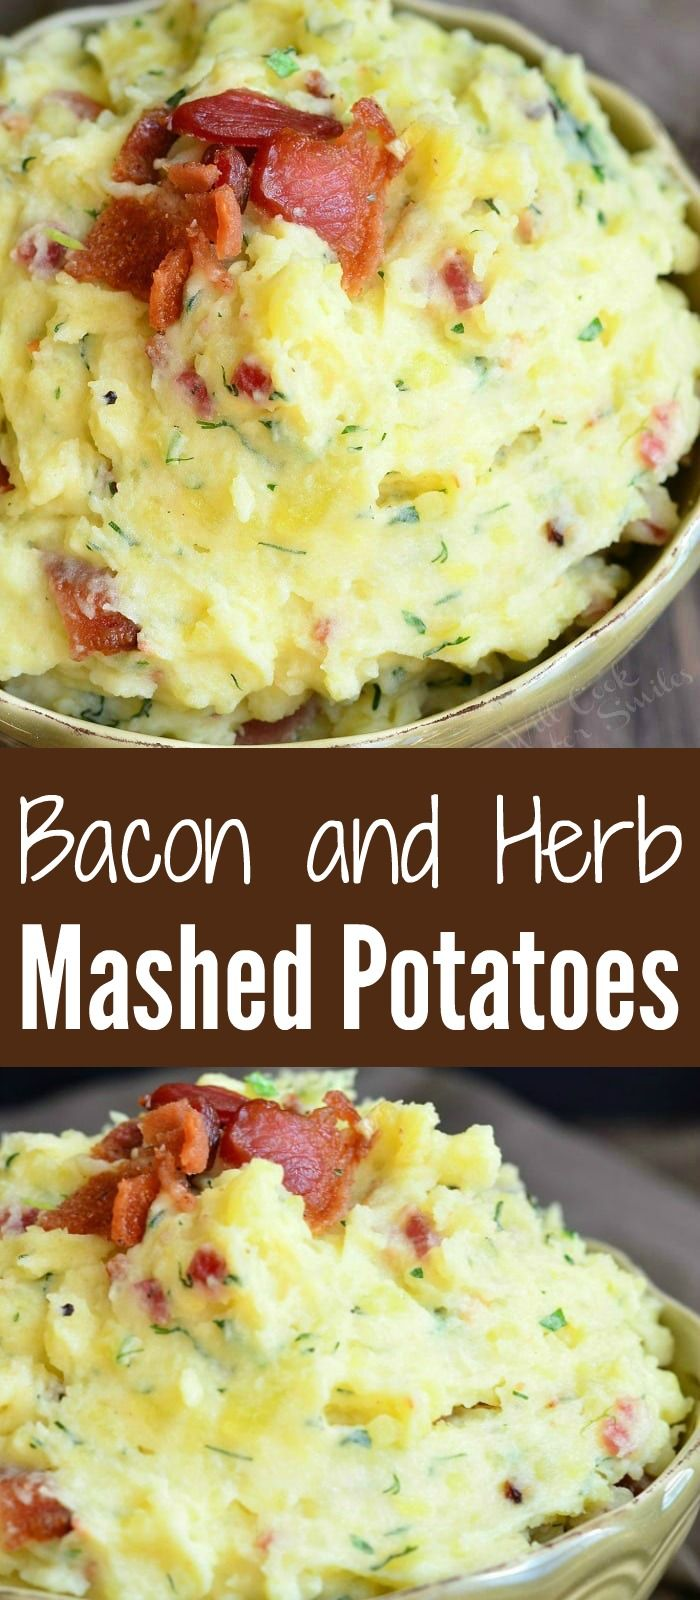 Bacon And Herbs Creamy Mashed Potatoes Smooth Creamy Delicious Mashed Potatoes Loaded Wit Easy Potato Recipes Loaded Mashed Potato Recipe Bacon Bits Recipes